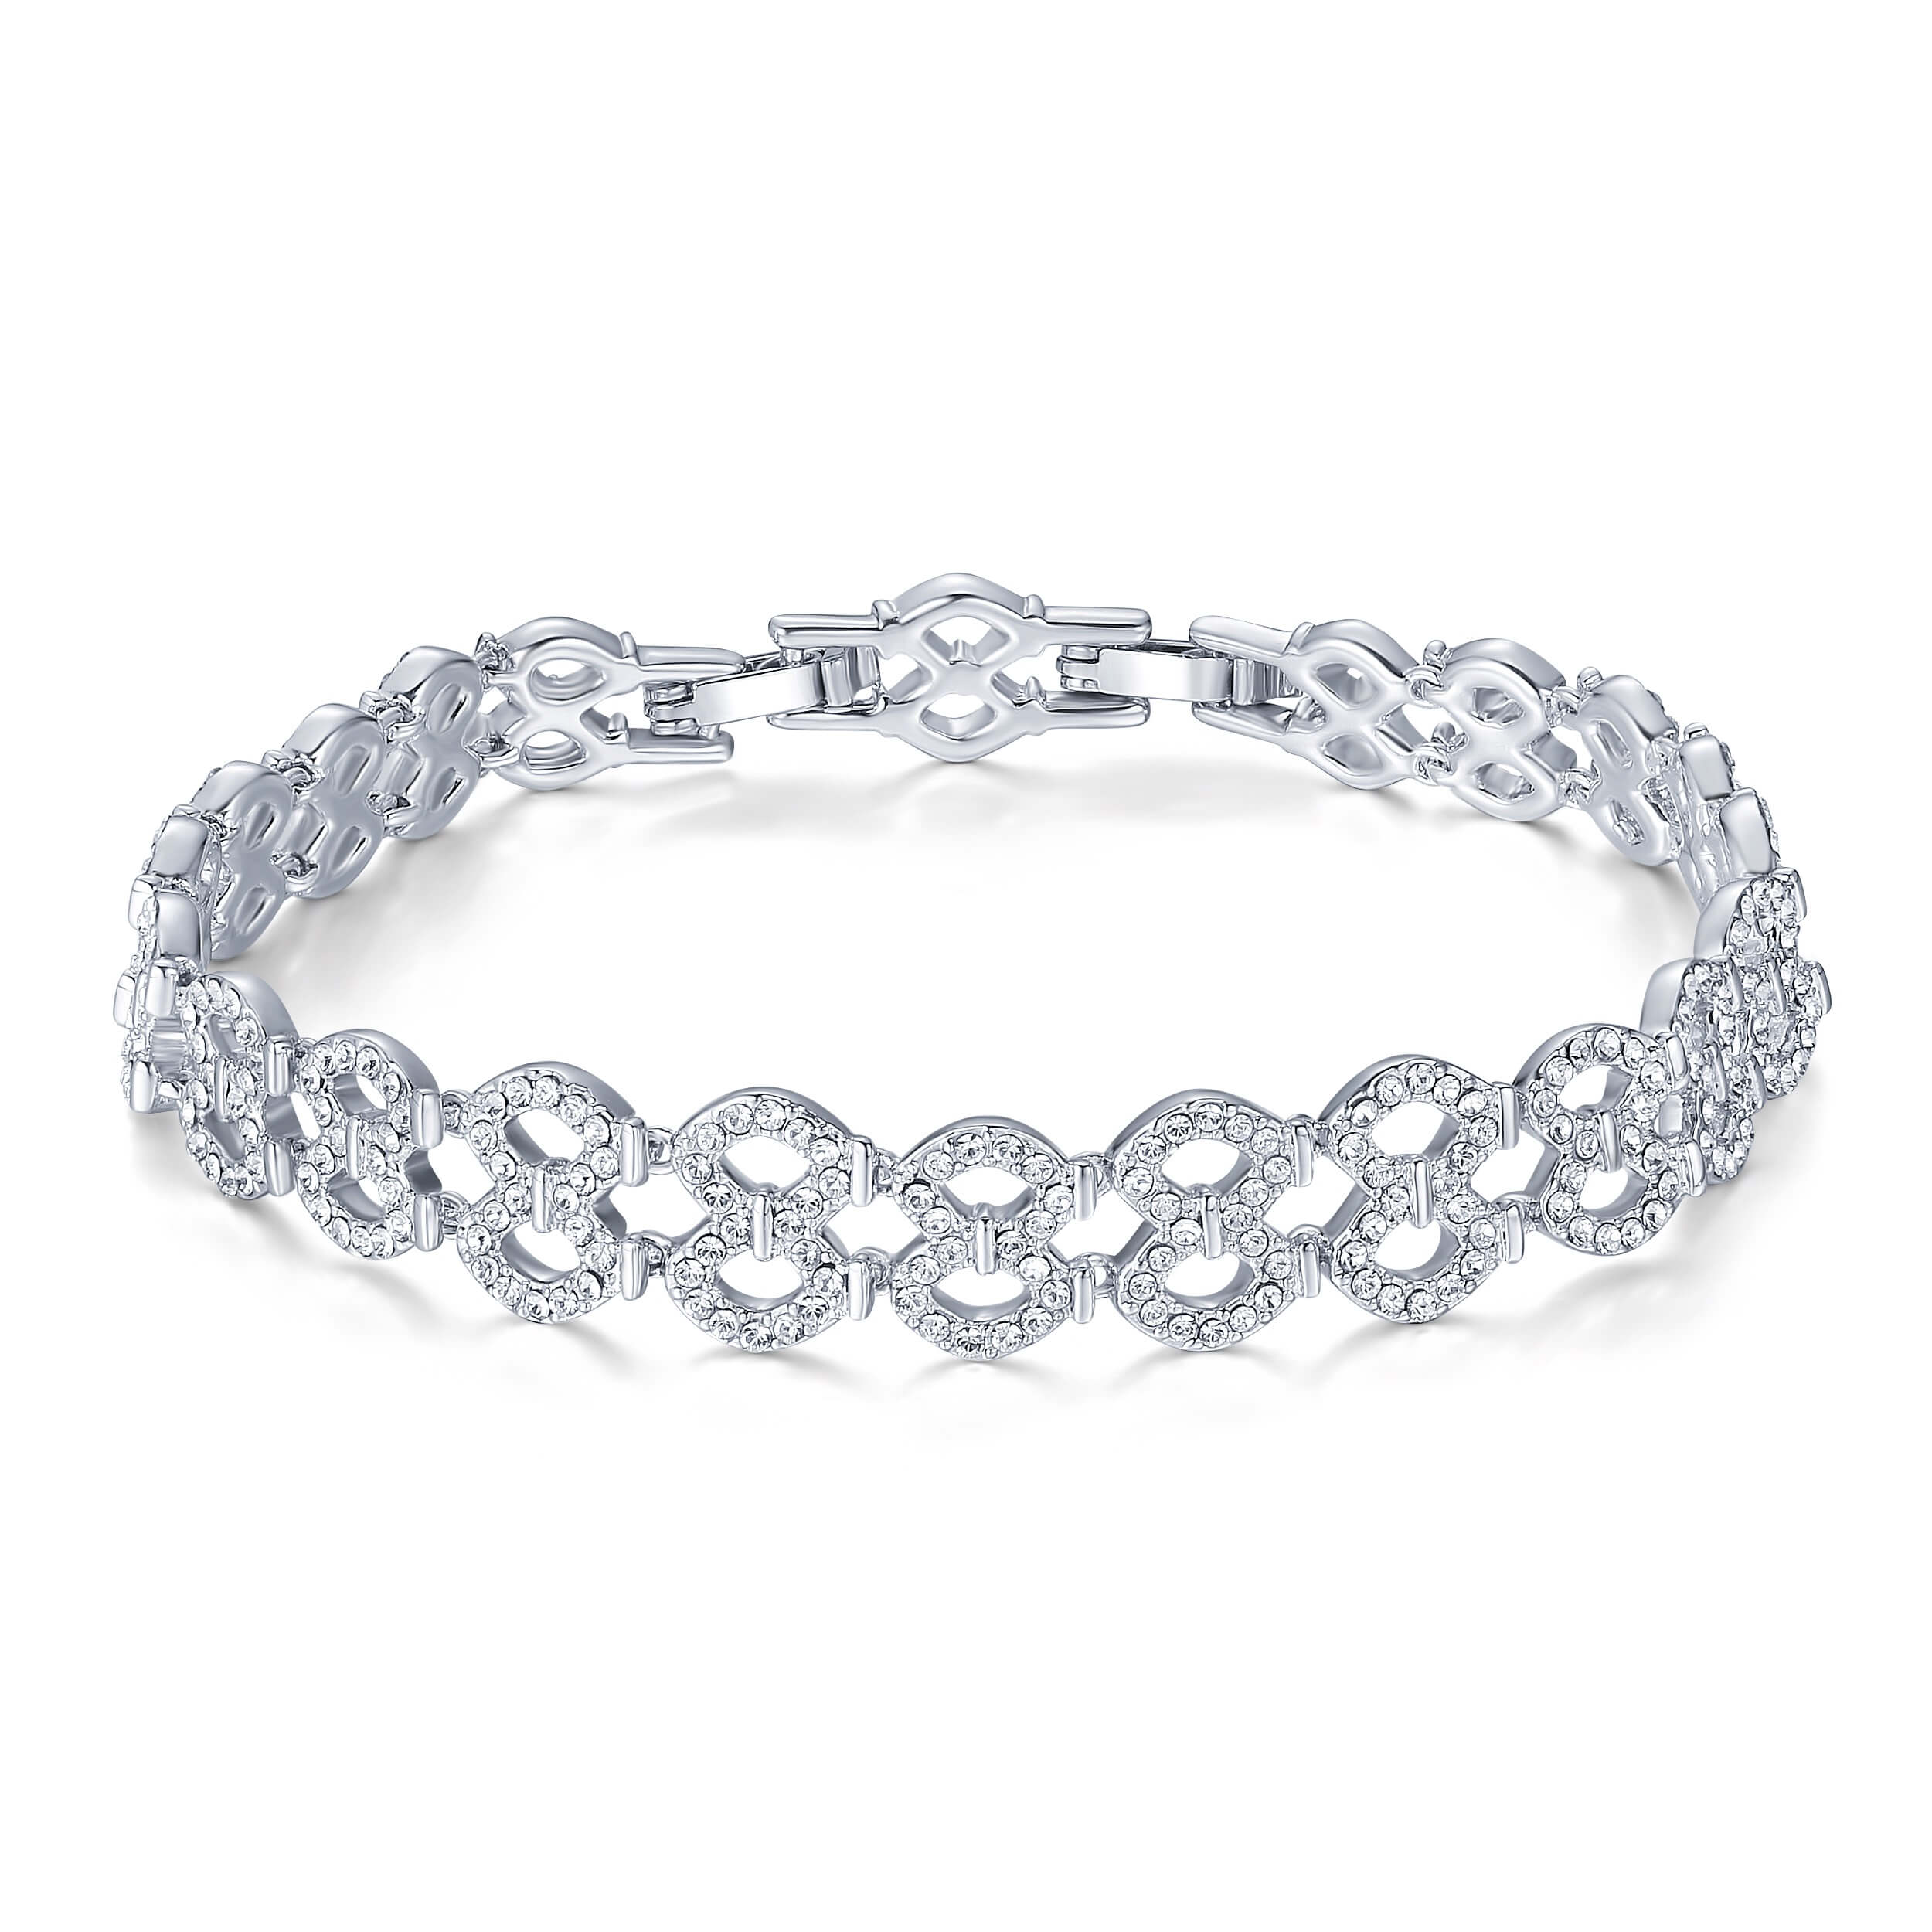 8578365ada0f2 Details about Lace Bracelet with Swarovski Crystals Rhodium Plated MYJS